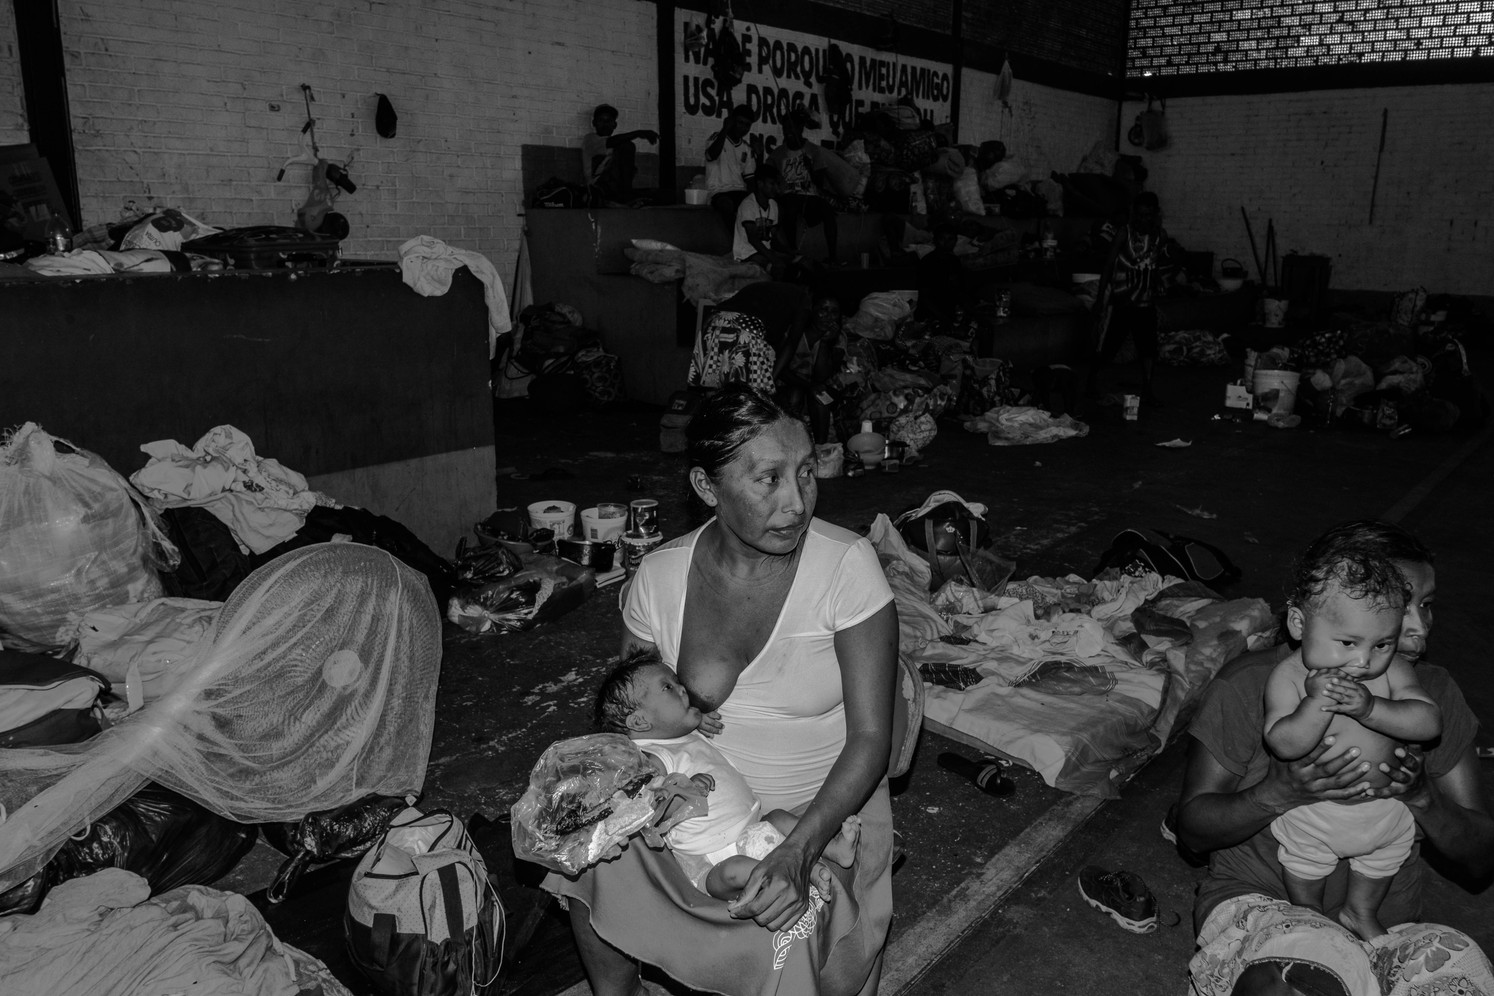 Indigenous Warao people, fleeing hunger in Venezuela, are living in a shelter on the outskirts of Boa Vista, Brazil, in the heart of the Amazon. The Warao are fled hunger in Venezuela to journey to Brazil. The number of Venezuelan women seeking care at Roraima's maternity hospital almost doubled in 2016 and 2017, to 807 and 825.